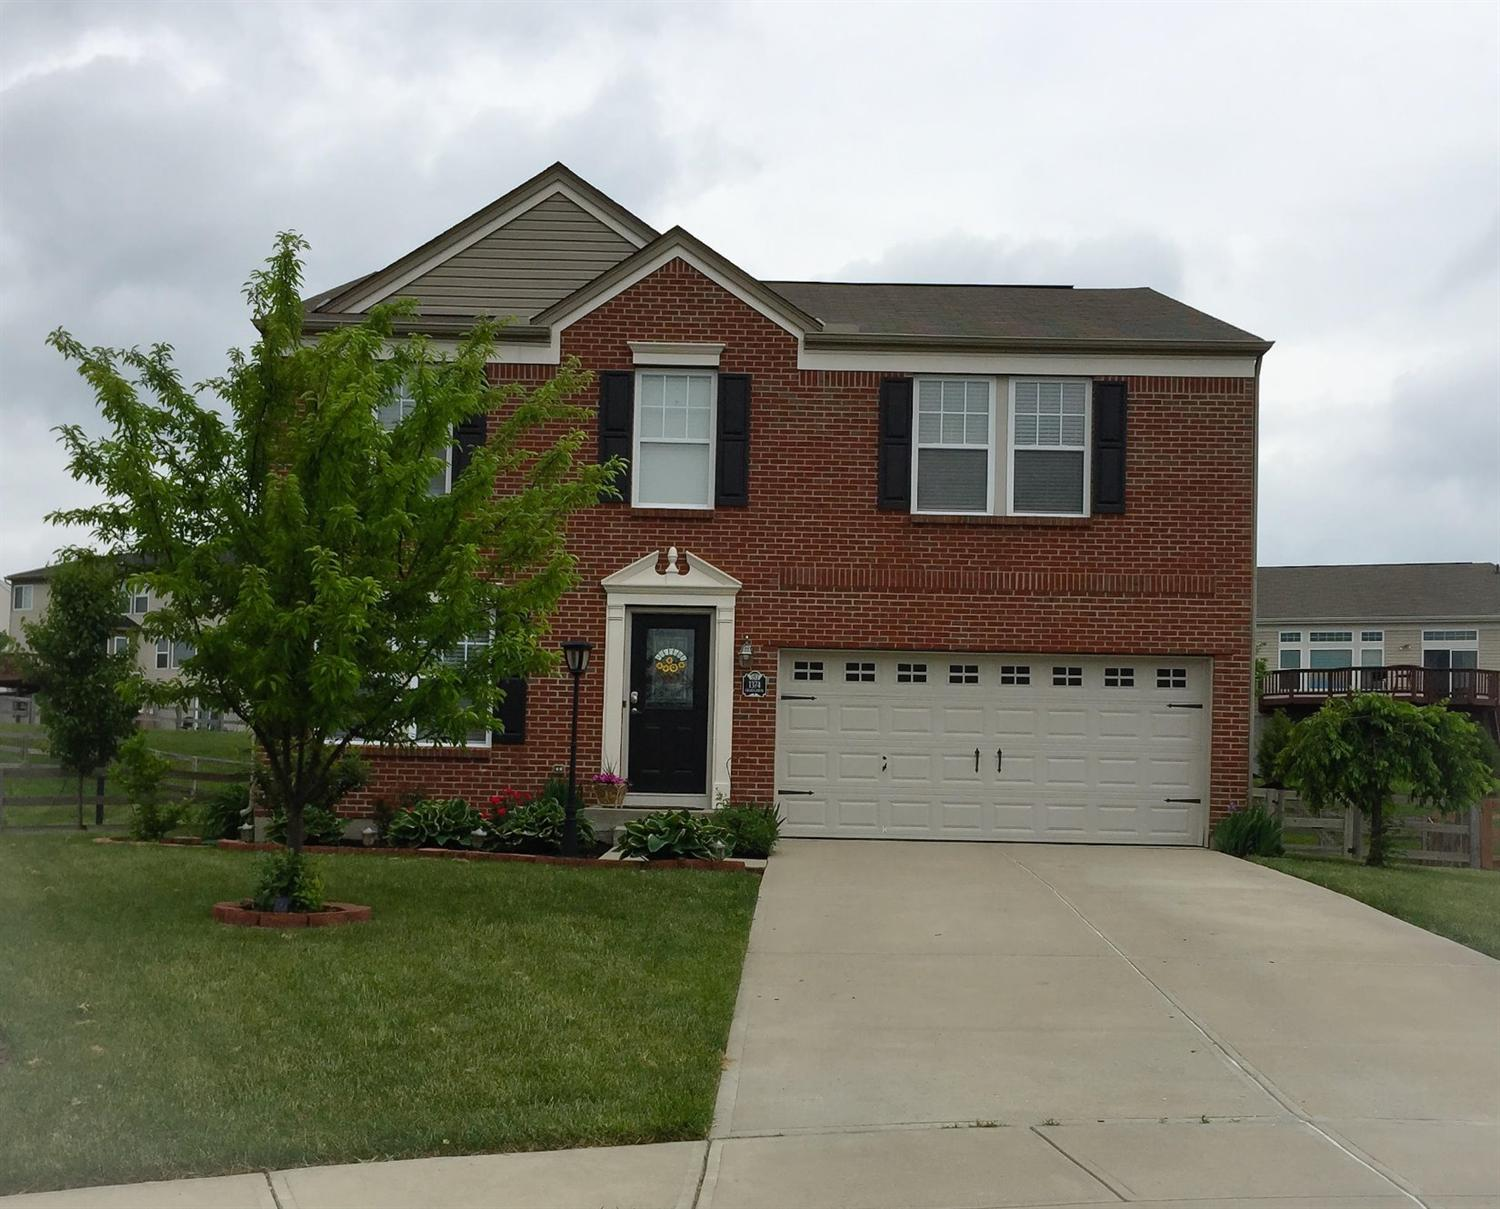 Photo 1 for 1374 Grandarbor Cir Independence, KY 41051